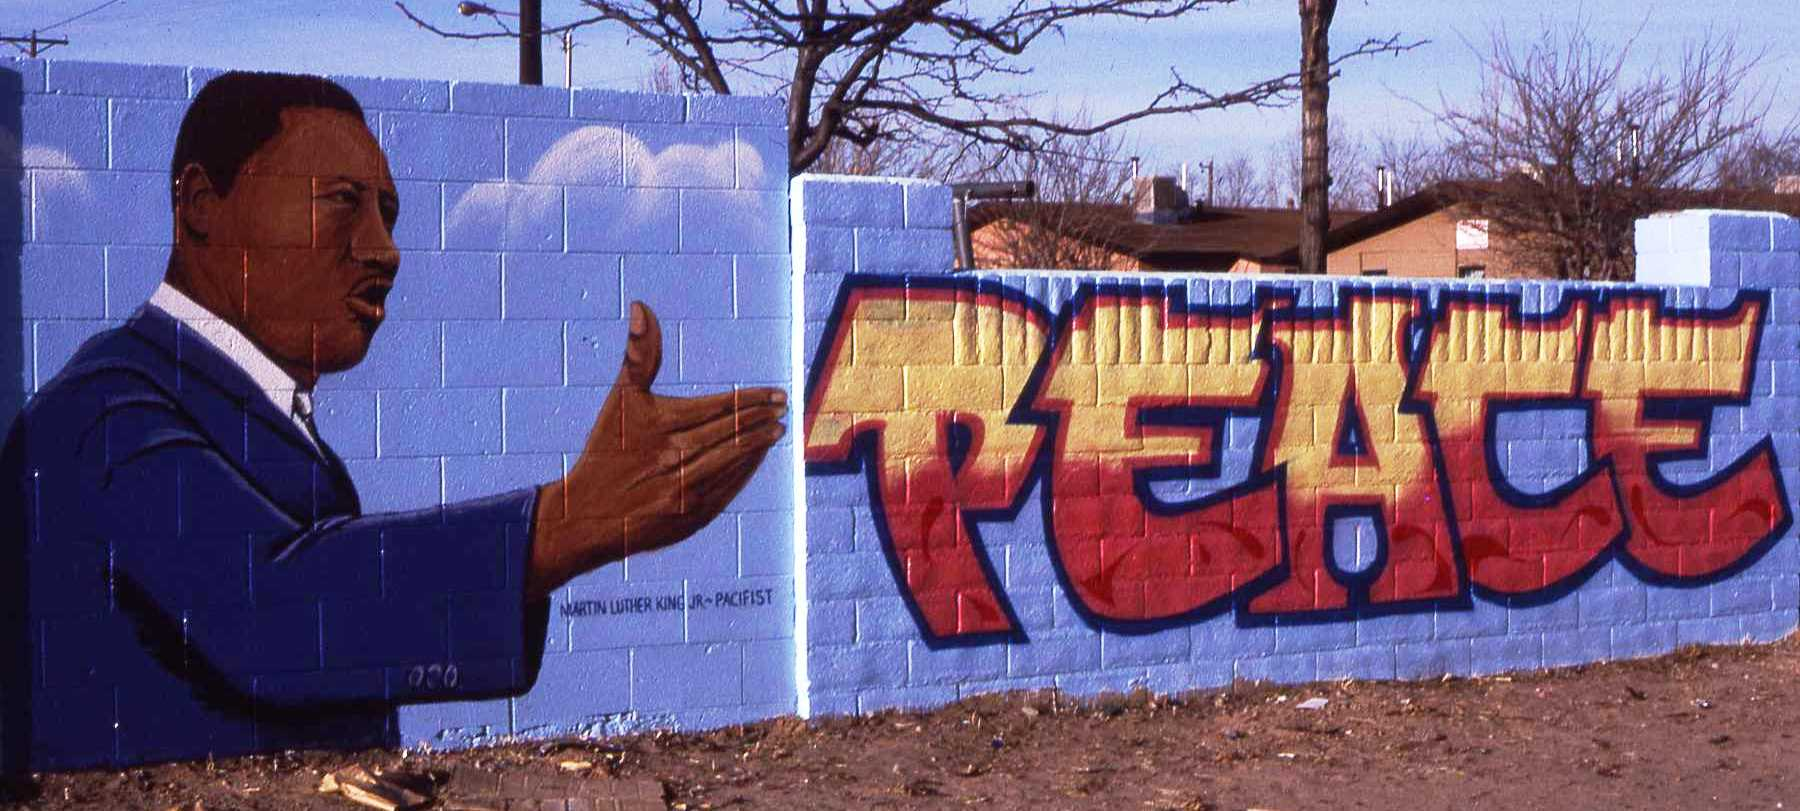 hand gesturing toward lettering painted on wall